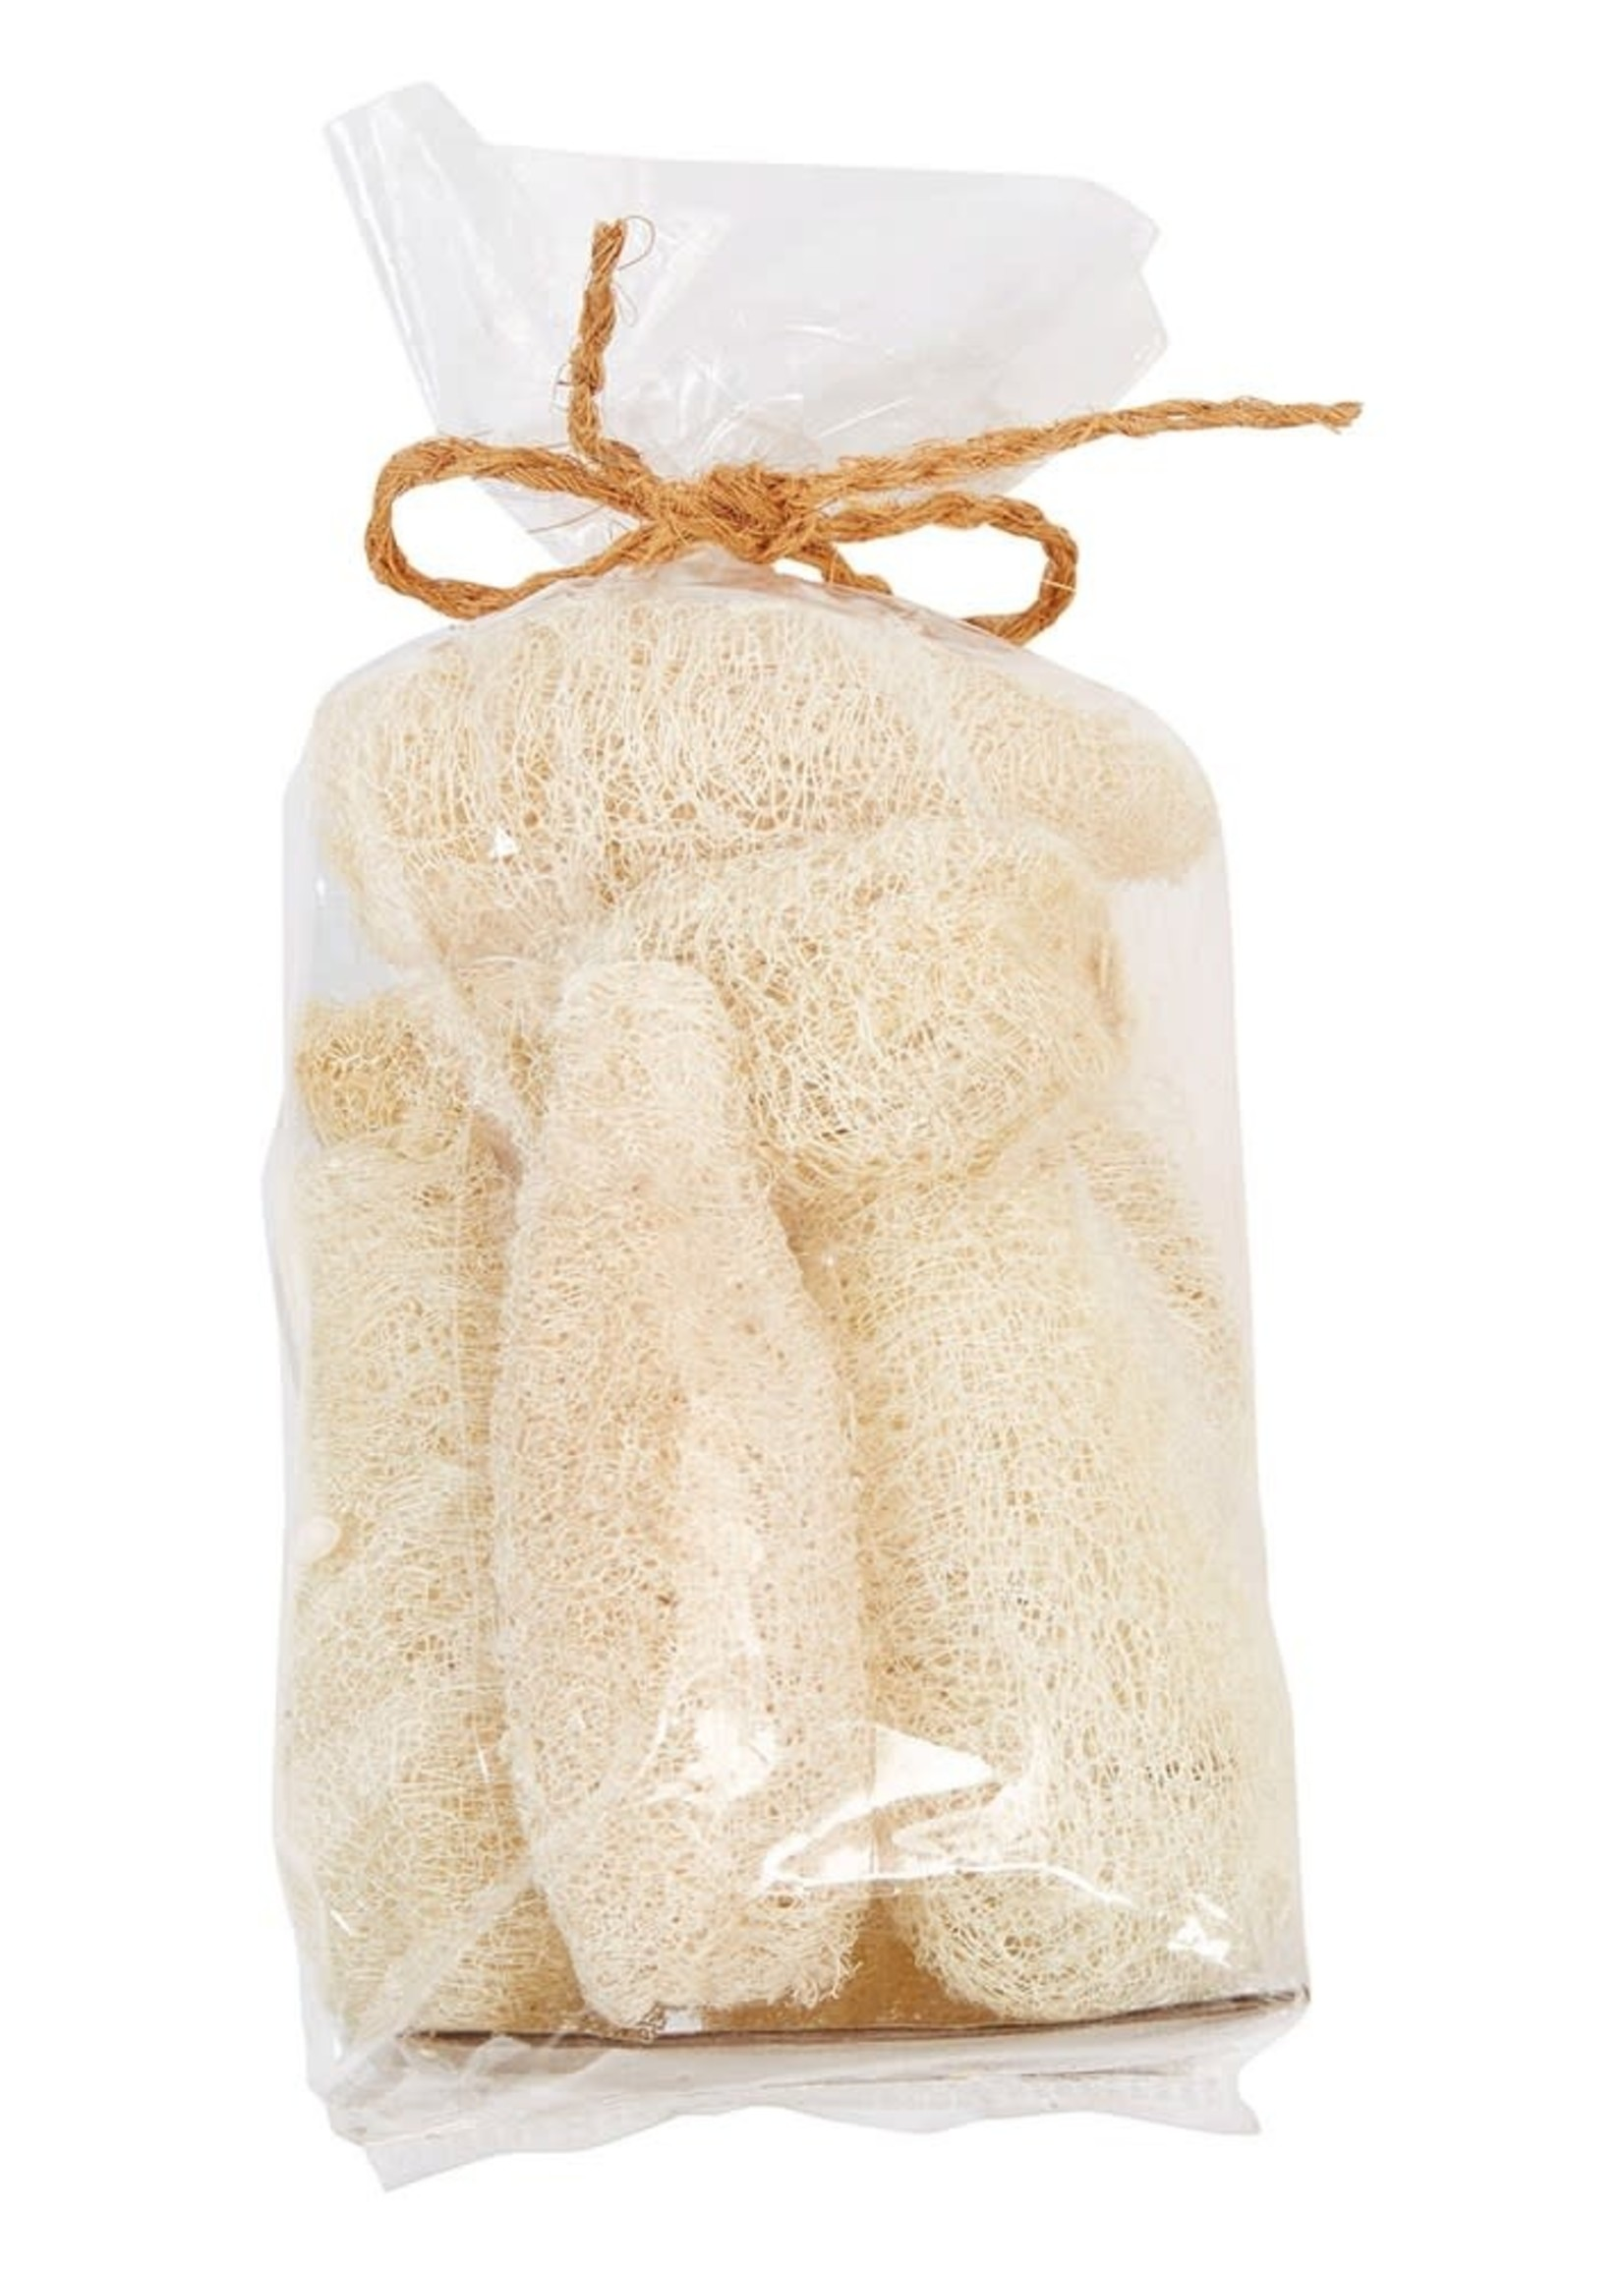 Dried Natural Sponge Gourd in Bag, Bleached (Contains 7 Pieces)